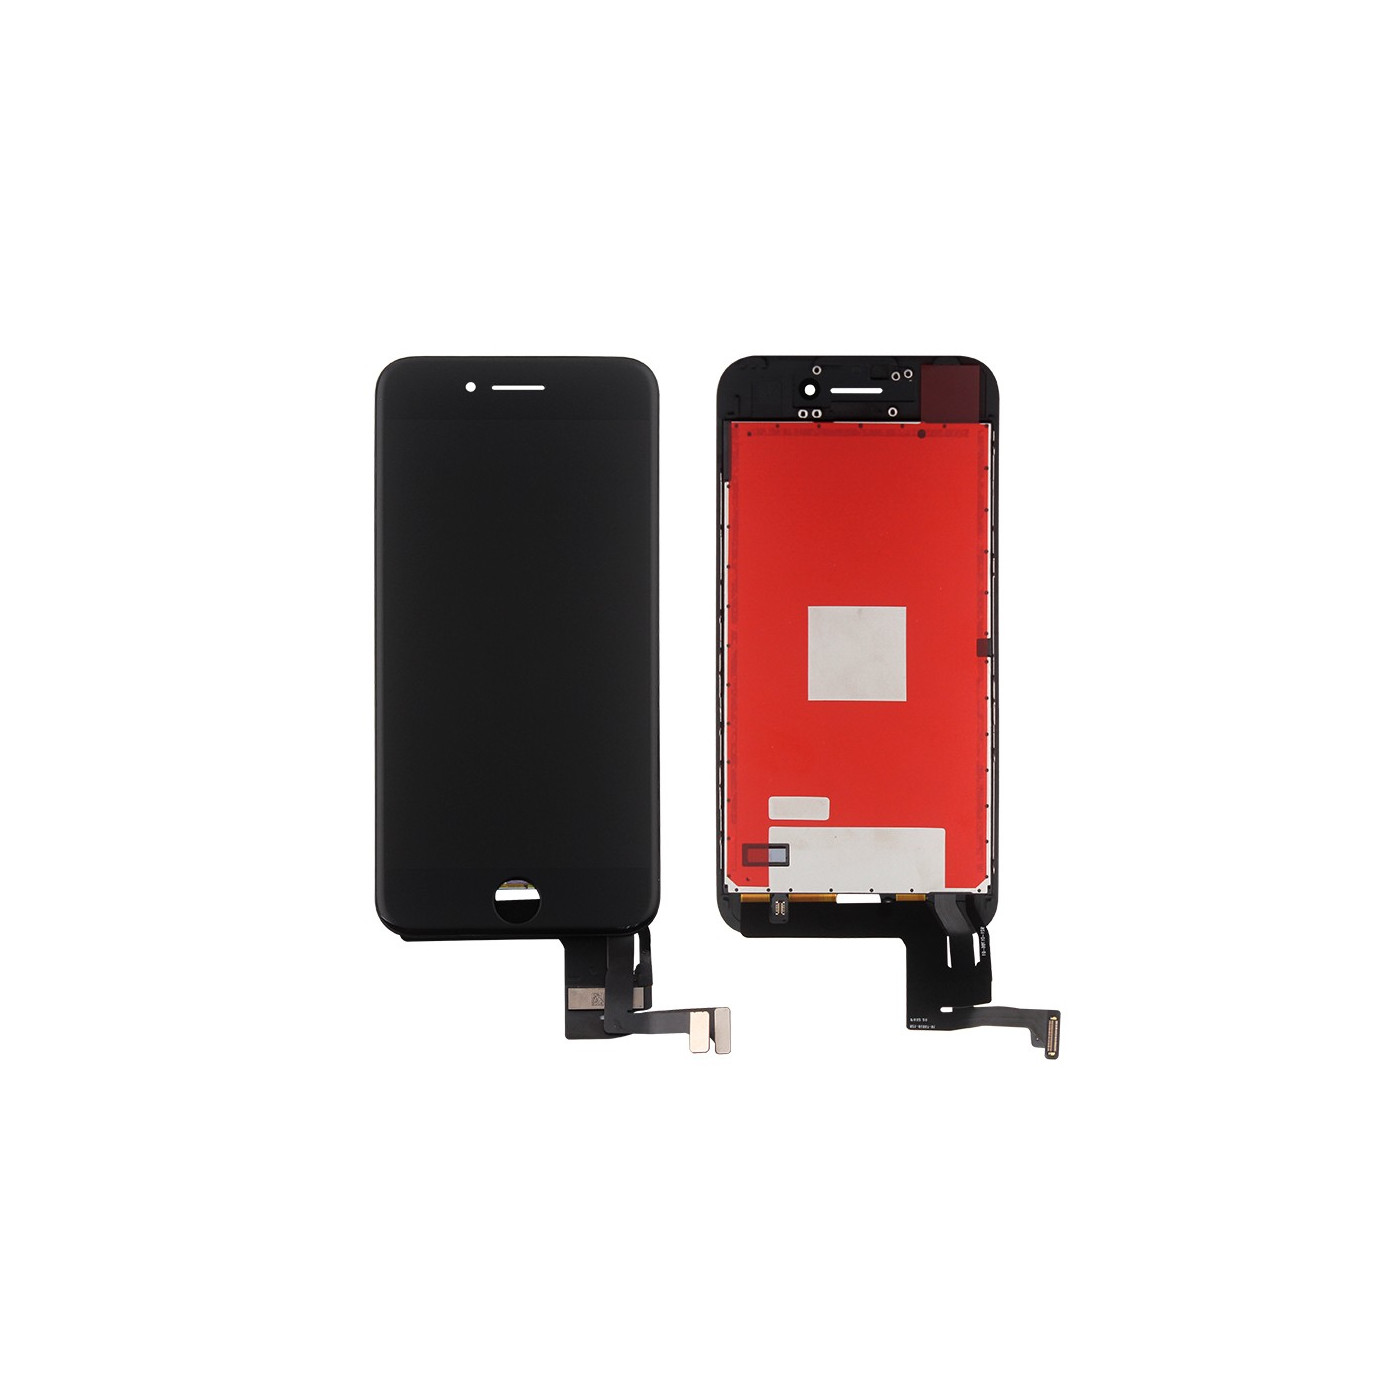 Touch screen + lcd display + frame for Apple iphone 7 black screen glass